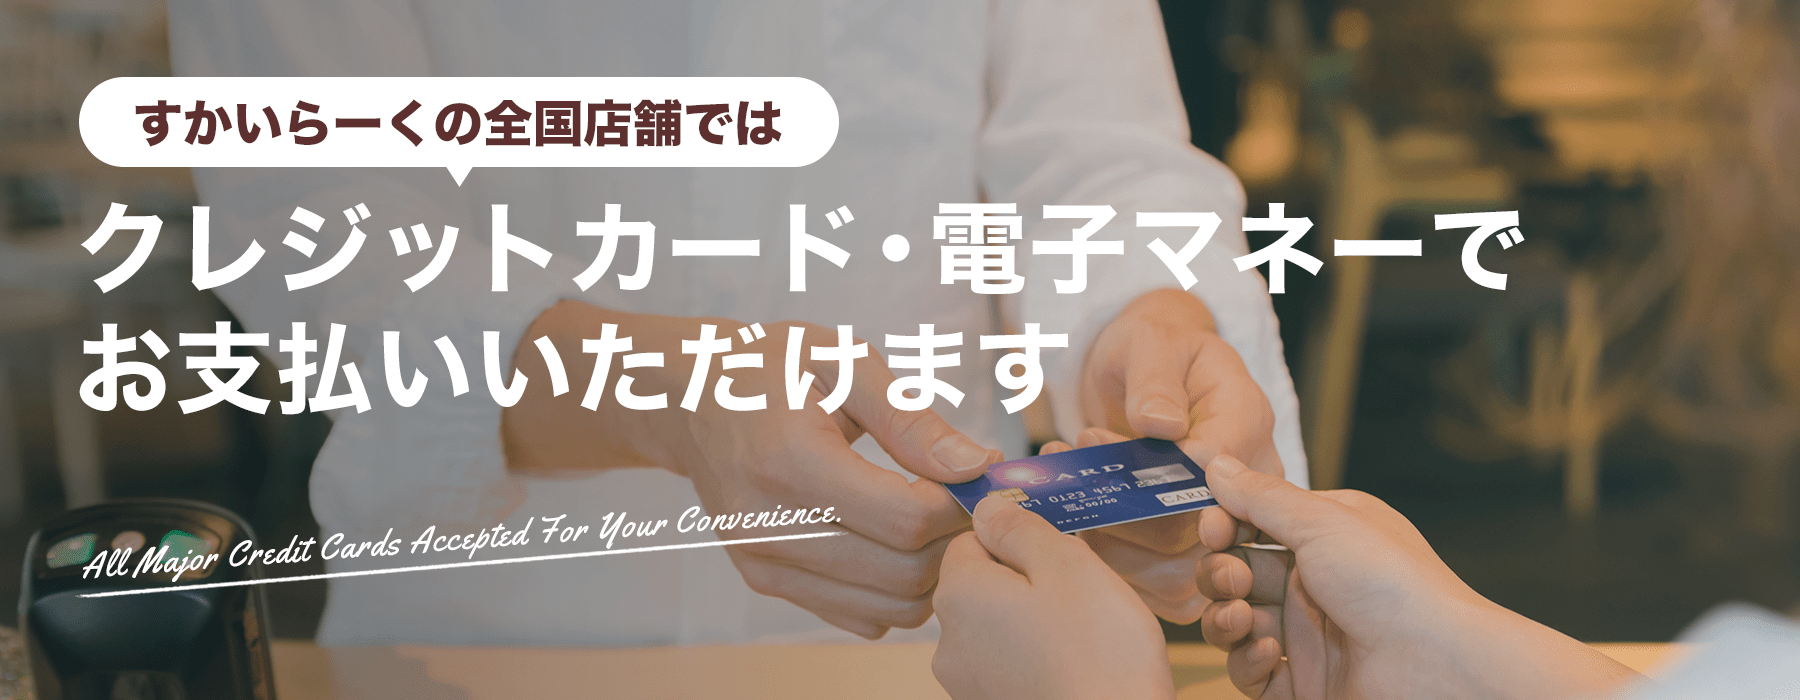 Skylark(すかいらーく) You can pay with credit card / electronic money at nationwide stores in